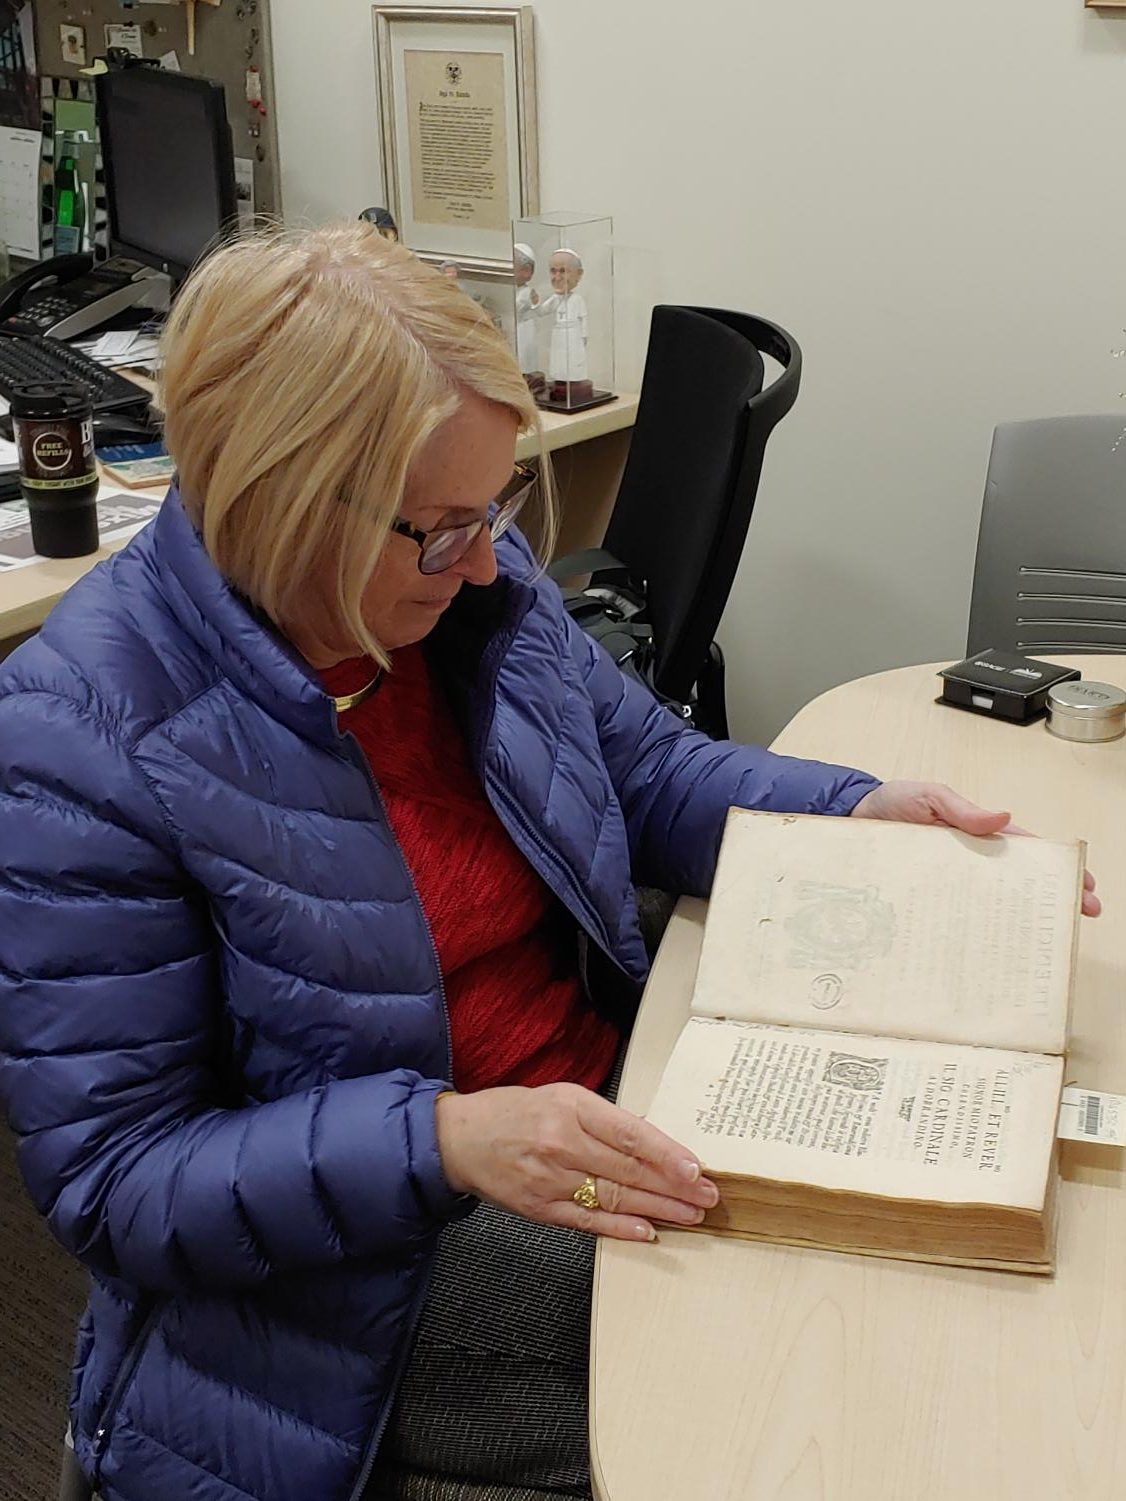 424-Year-Old Uncatalogued Book Found in the Library